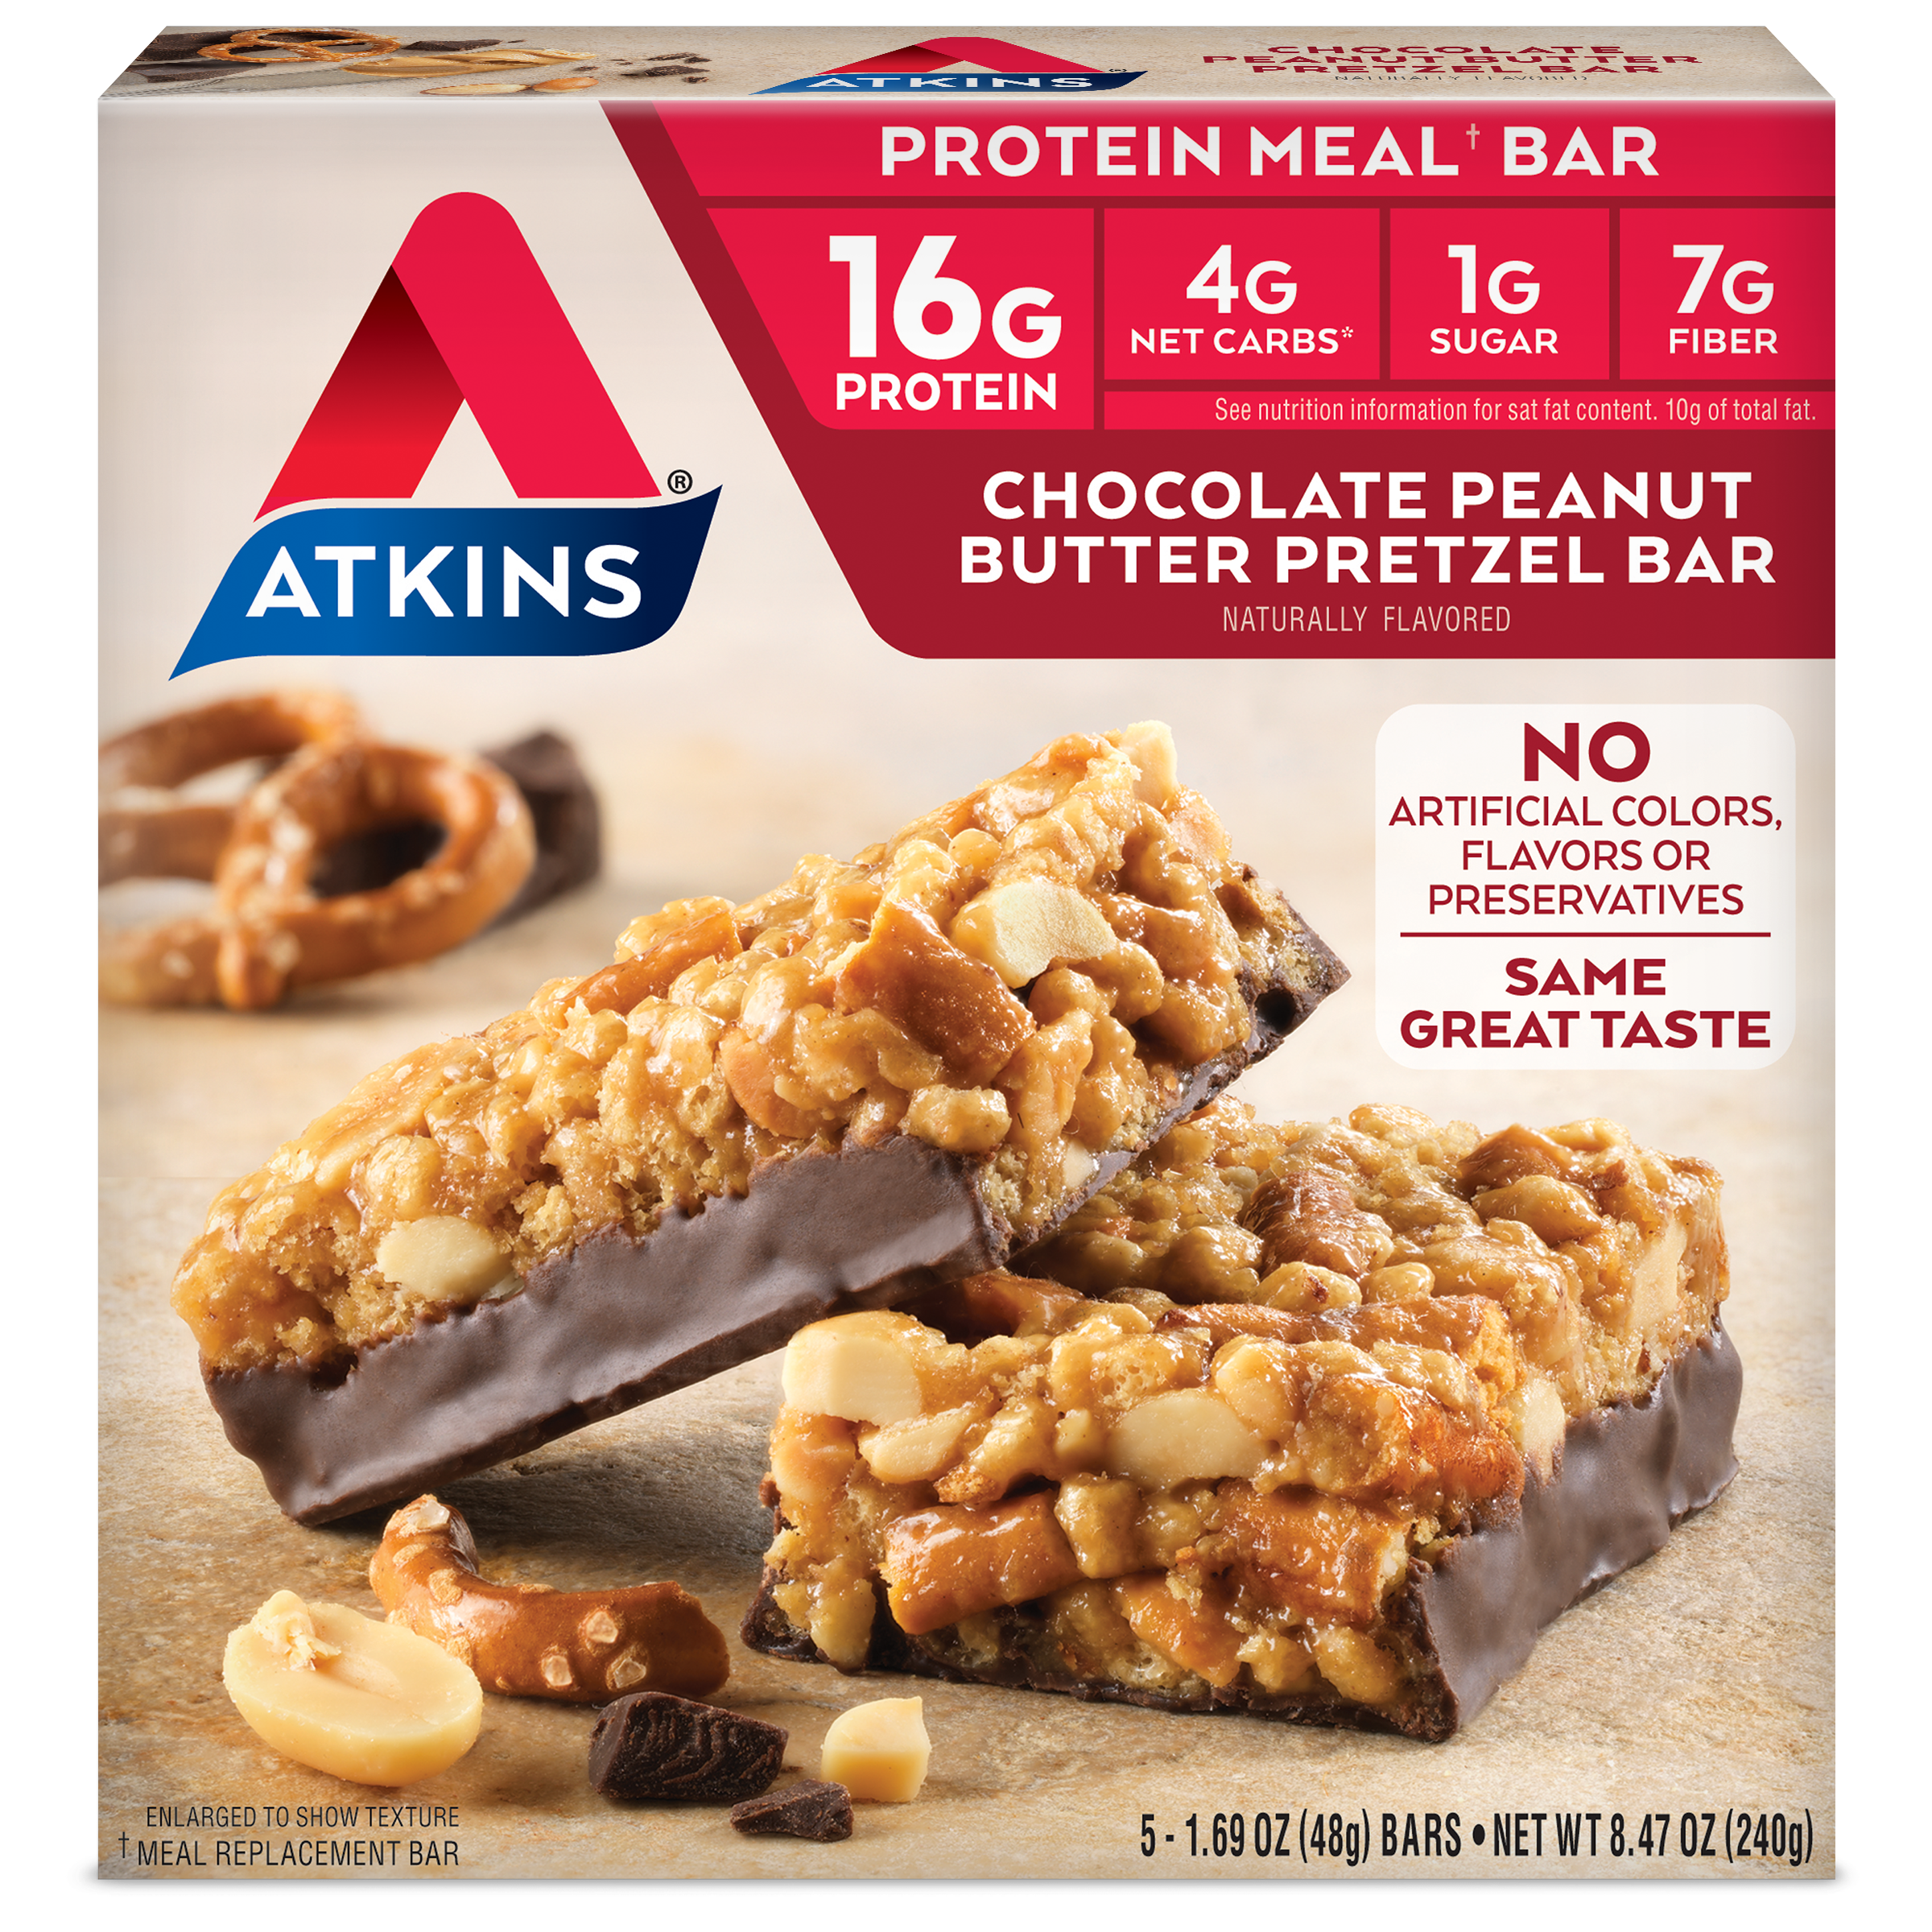 Protein Meal Replacement Bars For A Low Carb Diet Atkins